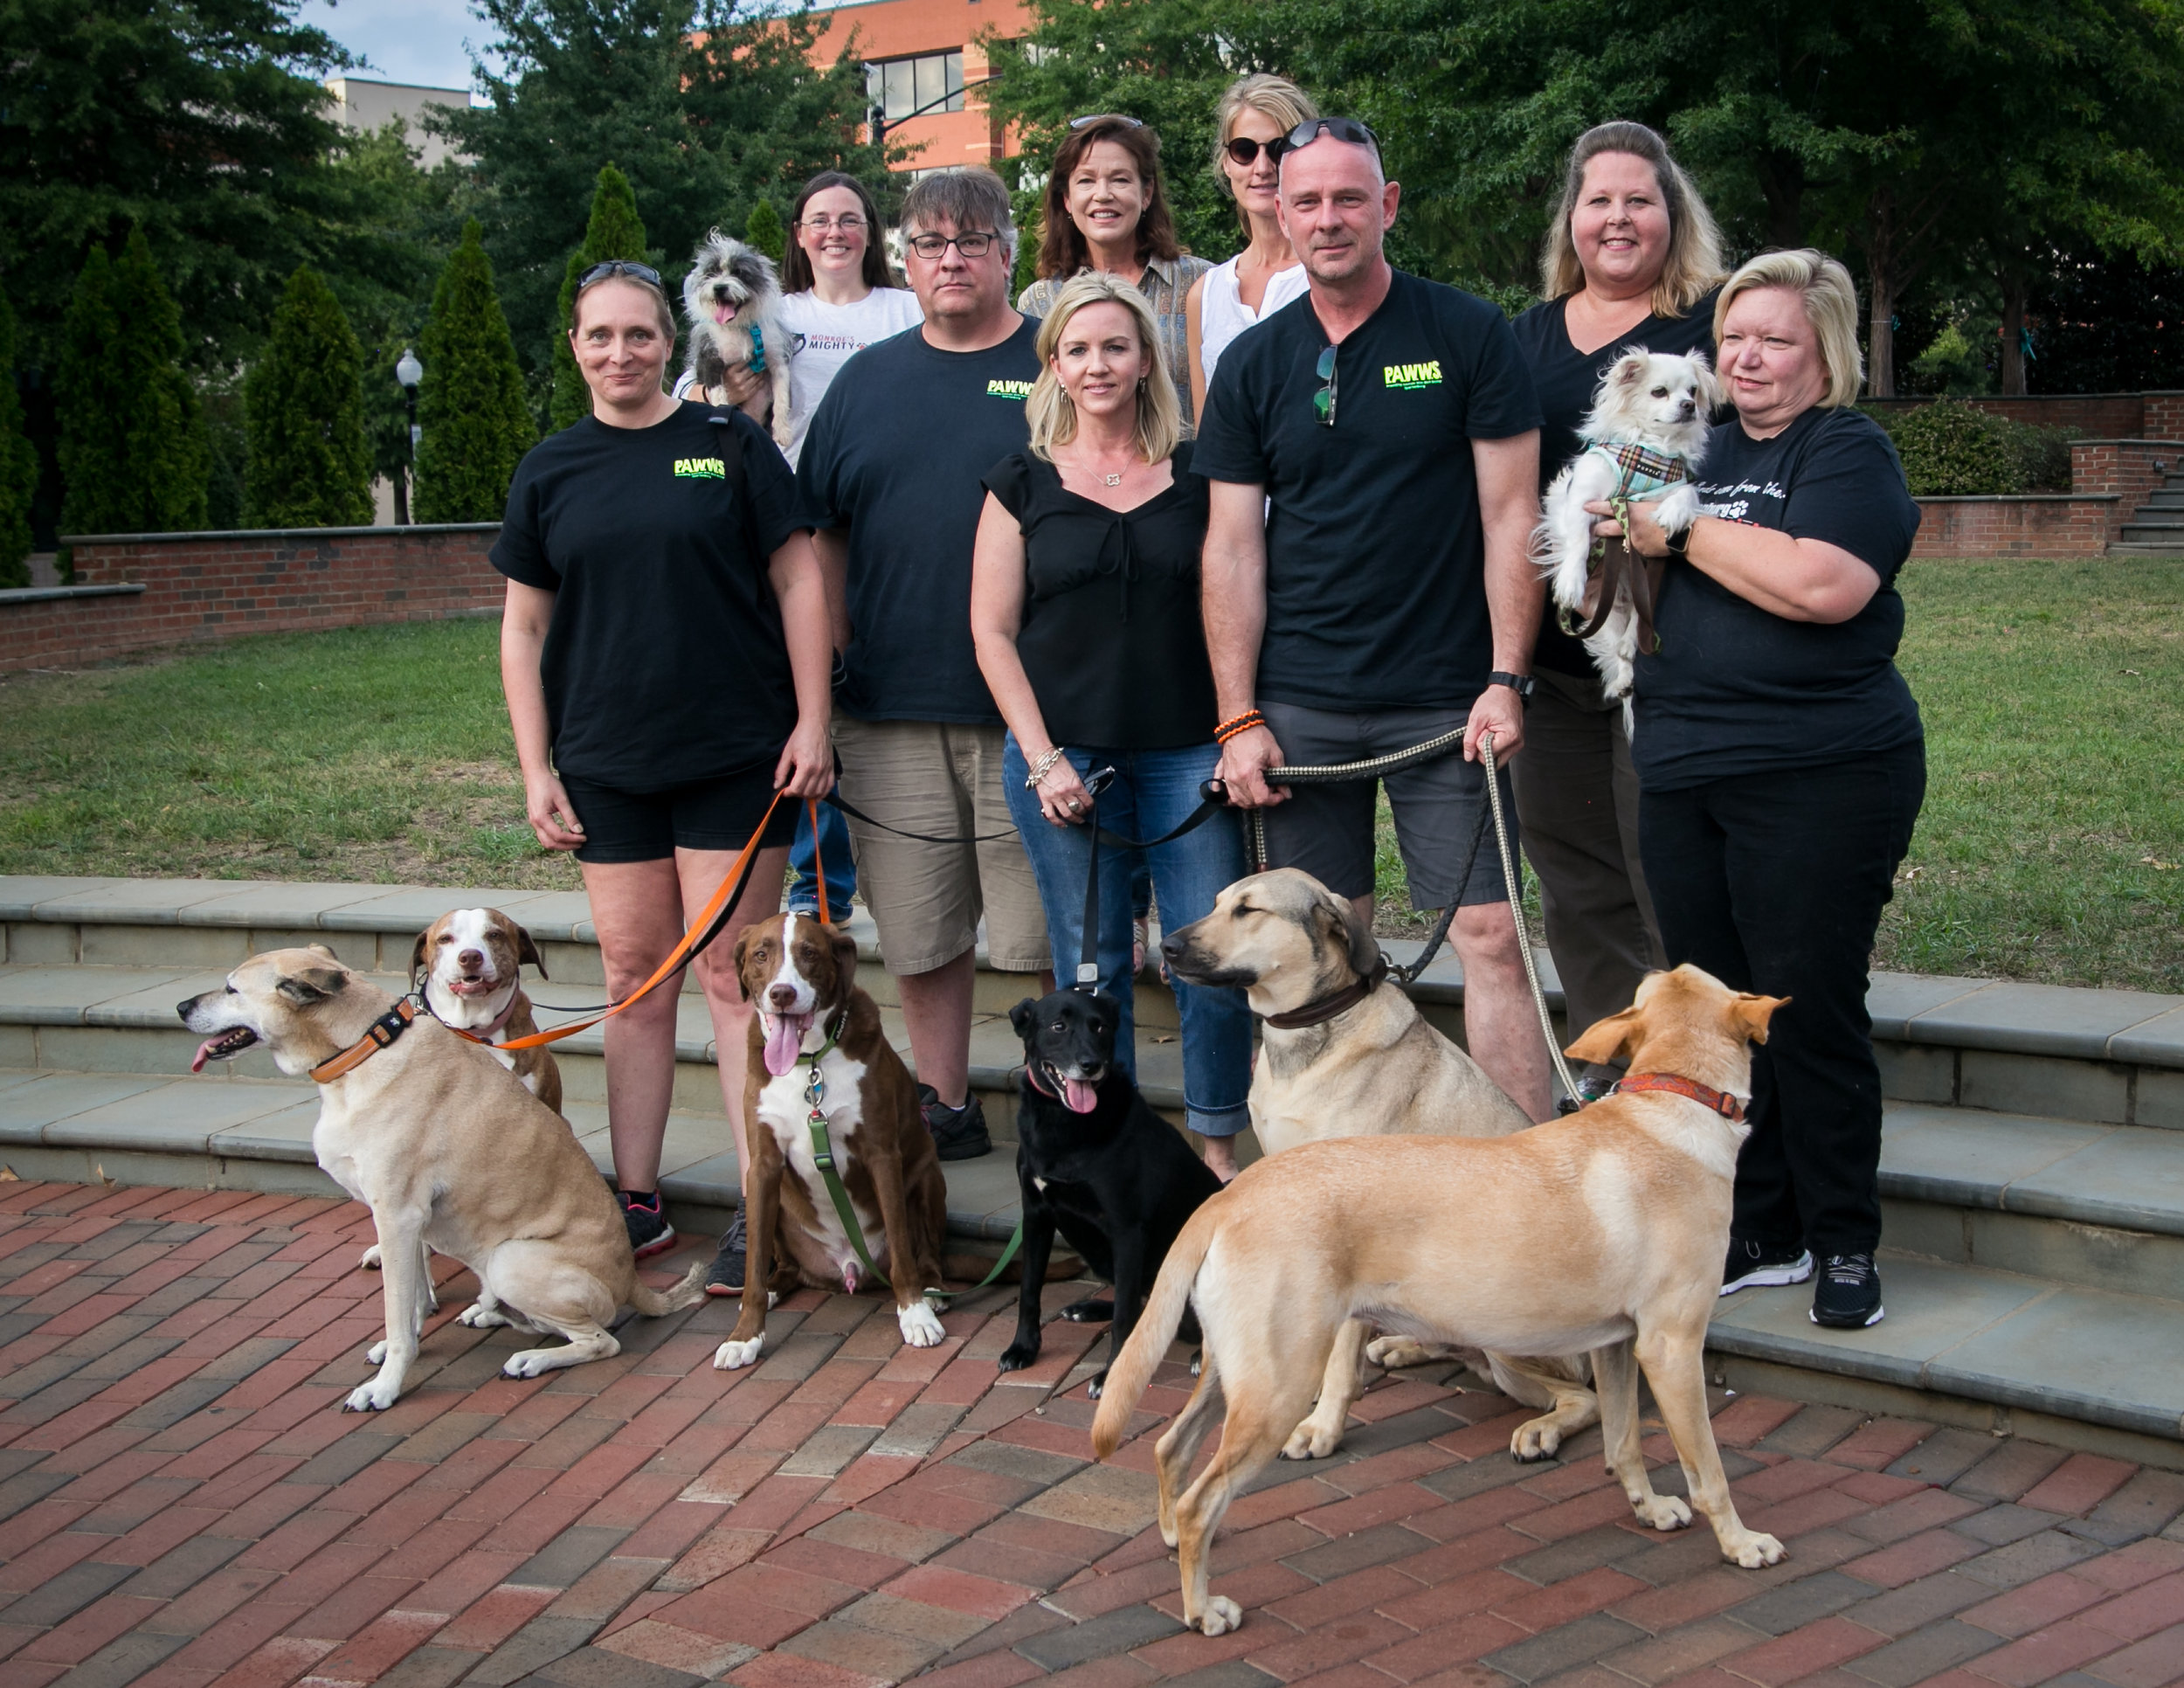 2015 Hub City Animal Project Grant Recipients - Monroe's Mighty Mission, Project PAWWS, Animal Allies, and the Spartanburg Humane Society